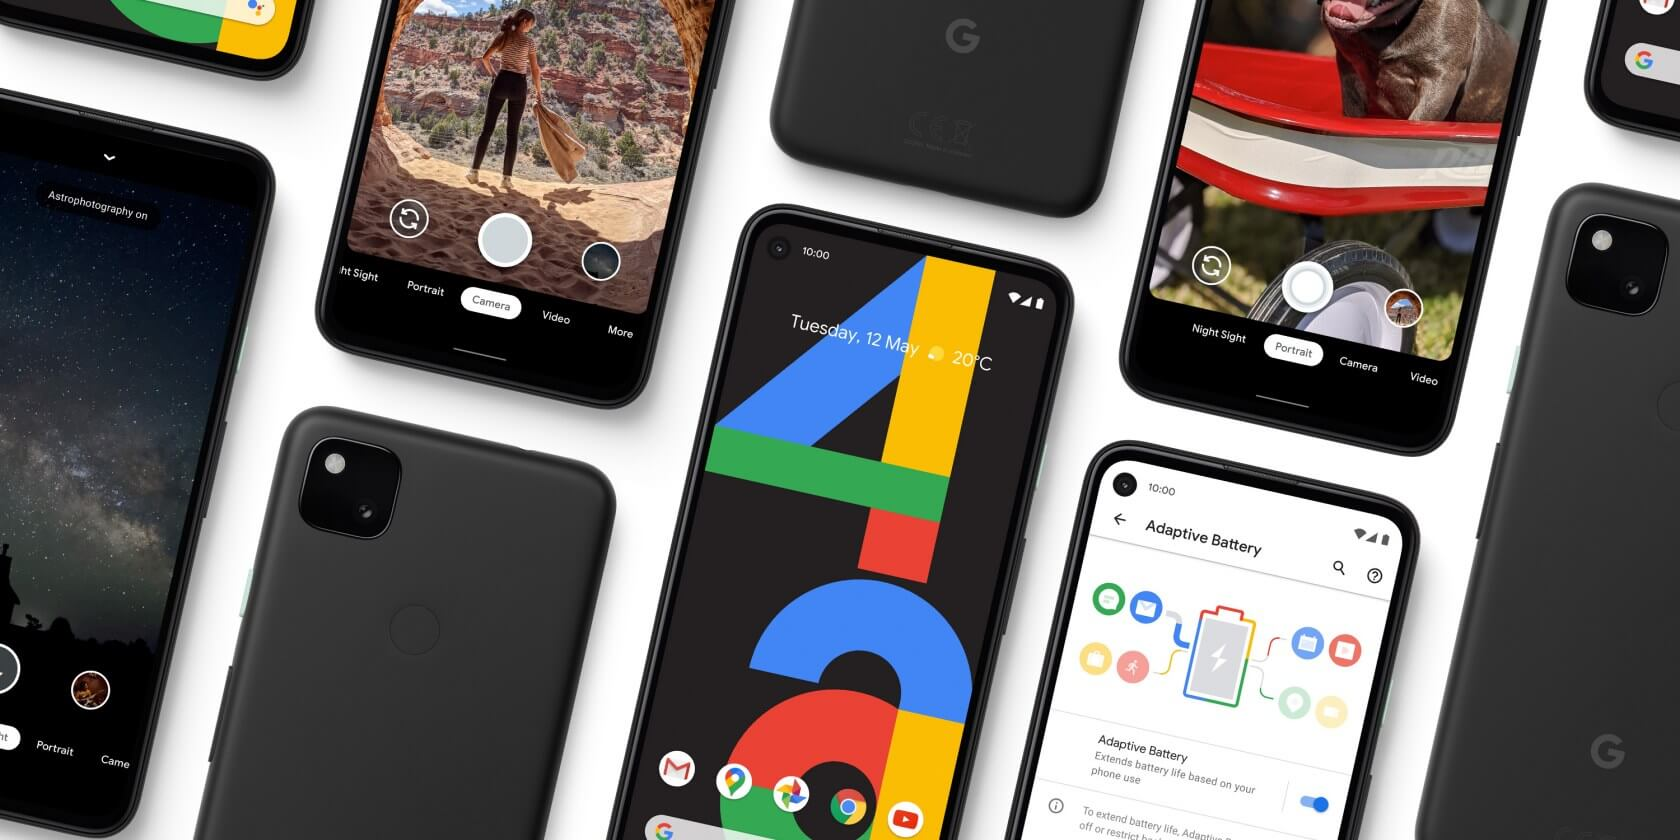 Google, Pixel 4a, Pixel 4a 5G, Android 11